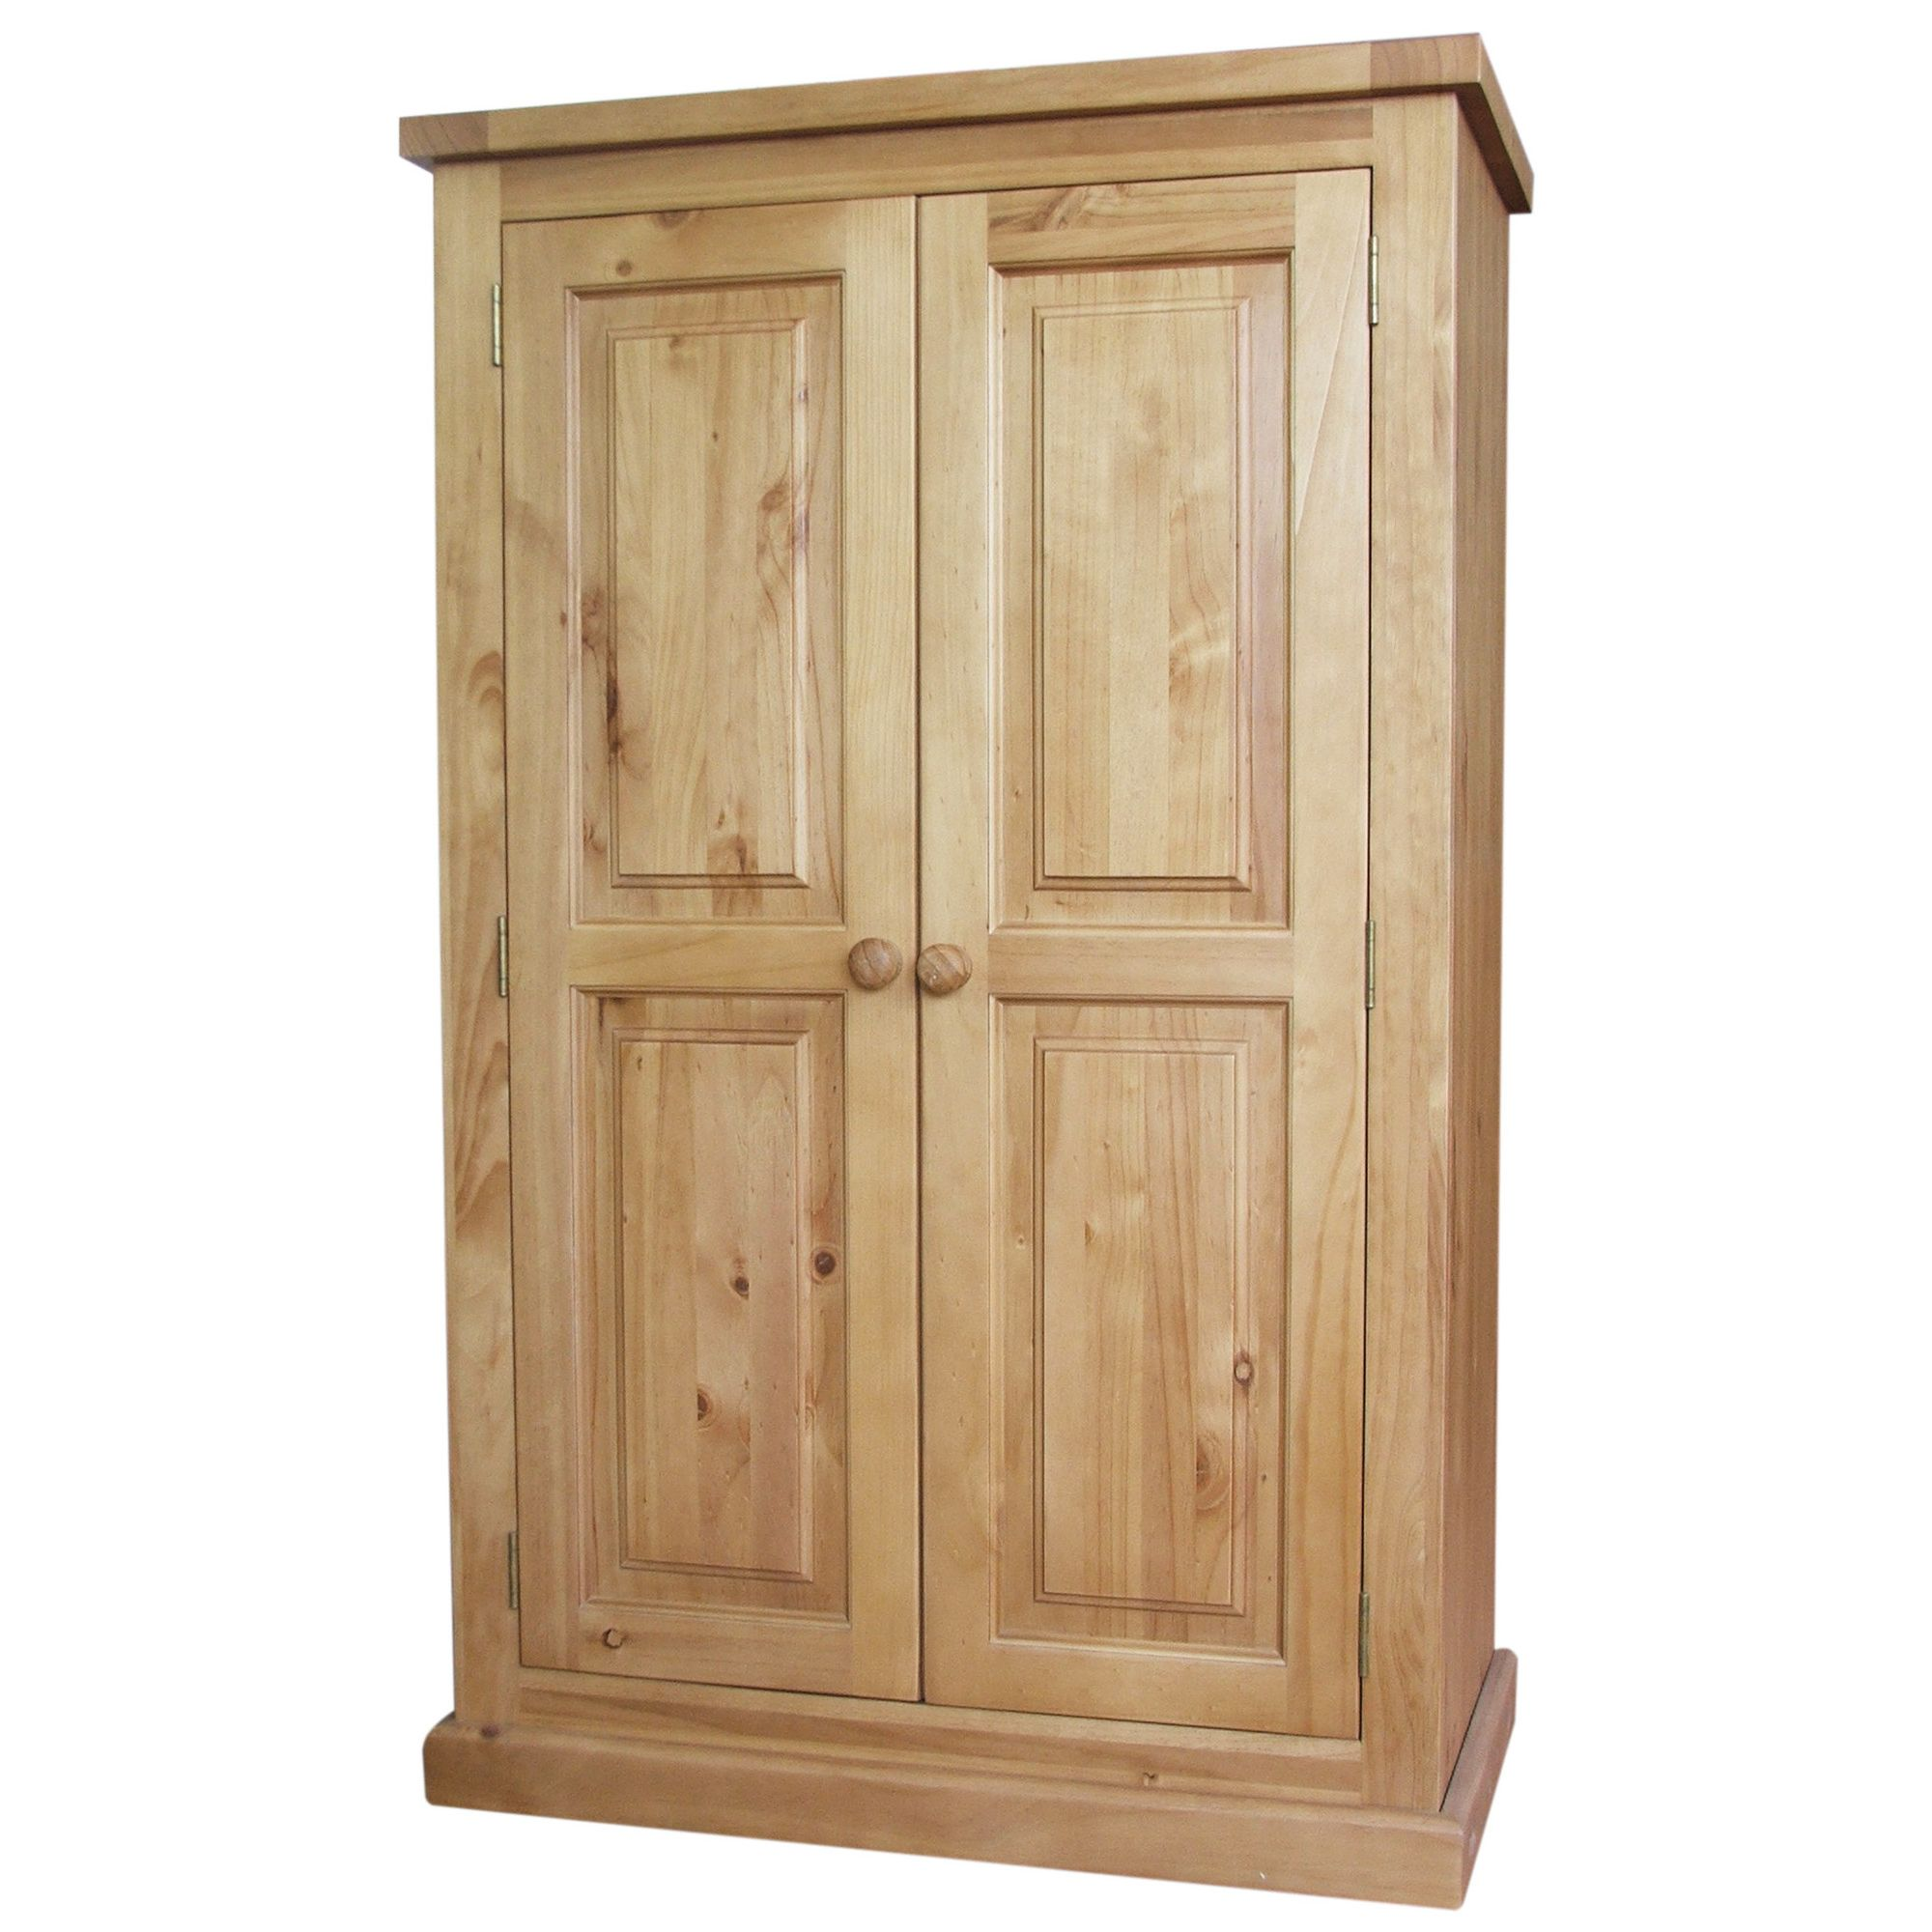 Thorndon Kempton Bedroom 2 Door Wardrobe in Pine at Tesco Direct